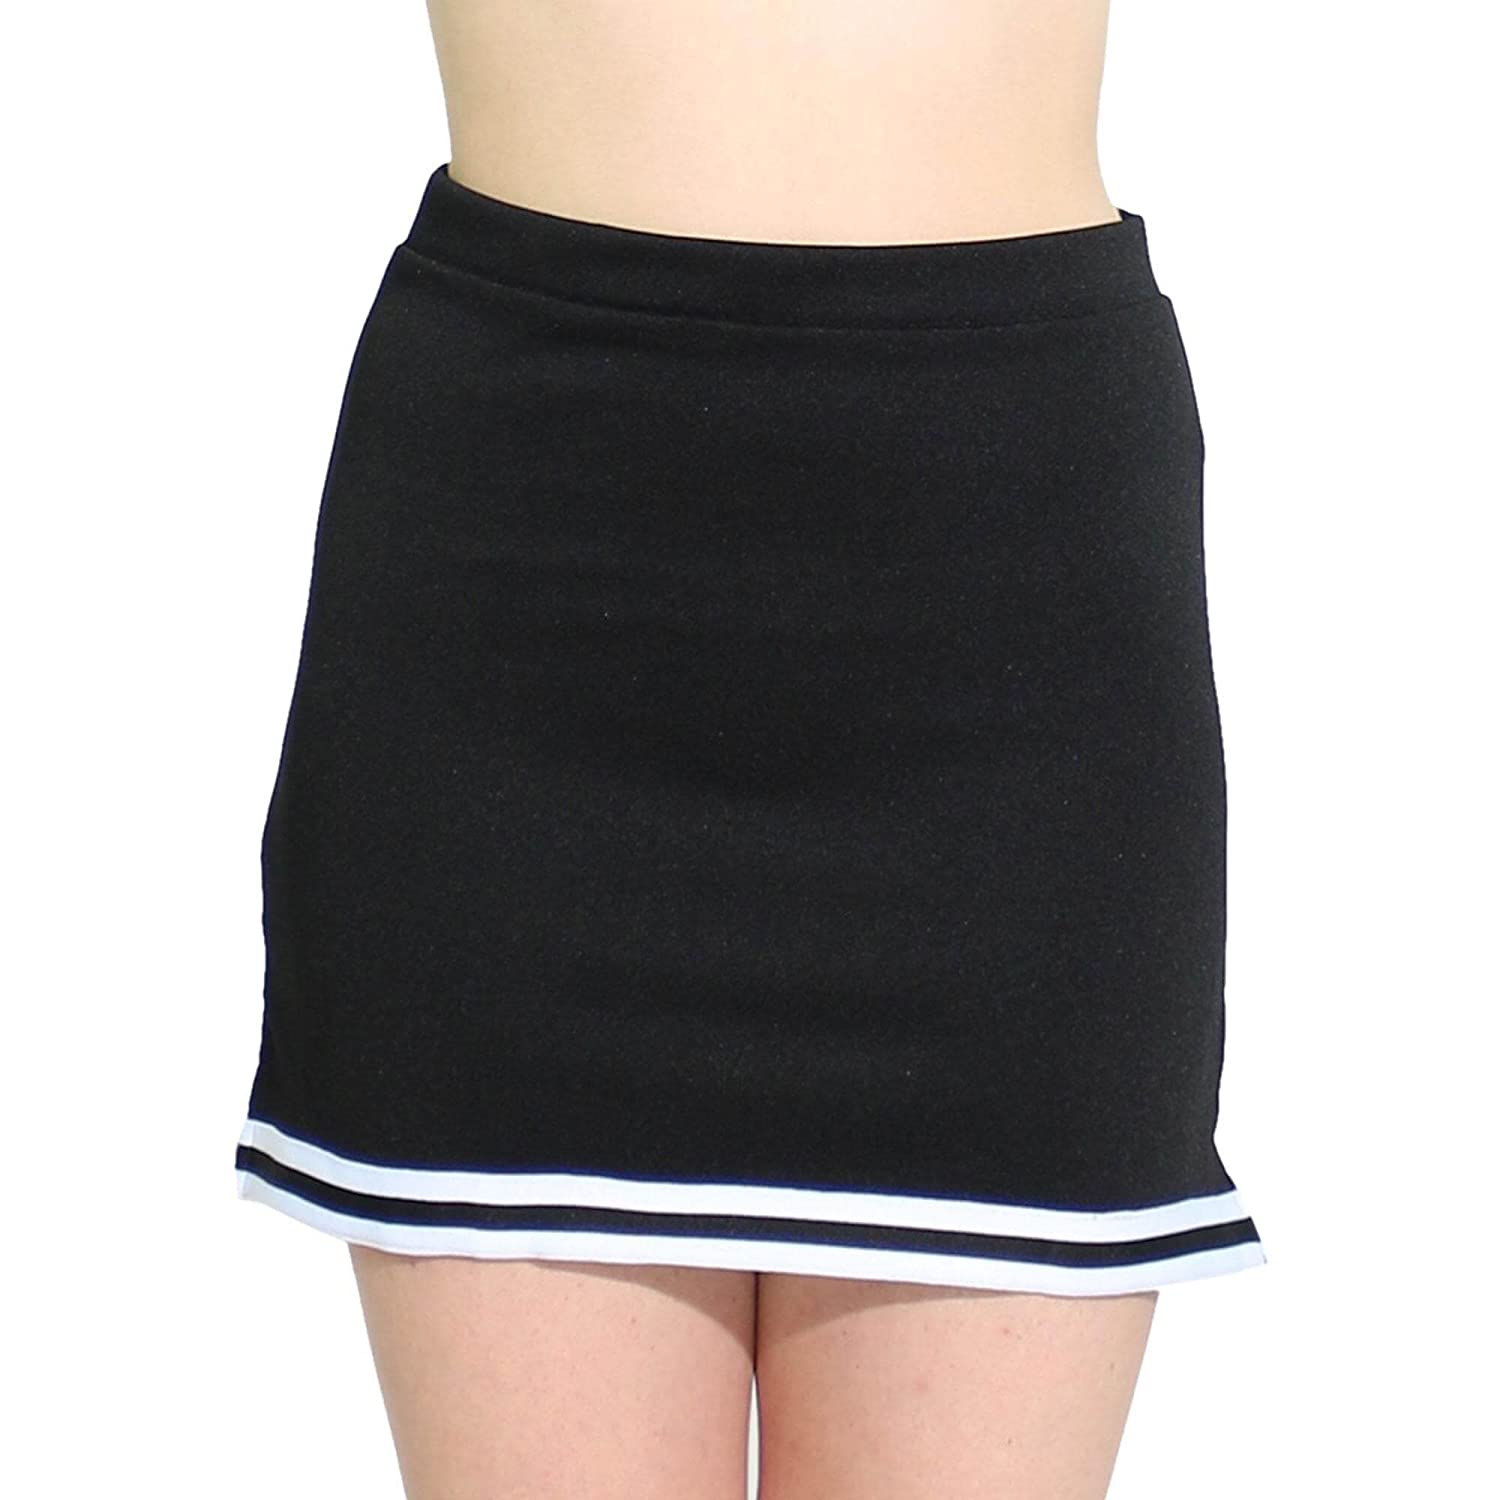 f7dff462bb 100% Polyester 1.2 inch braid, A-line, covered elastic waistband. Classic  skirt with slit on side seams. Durable, easy to care for material, ...